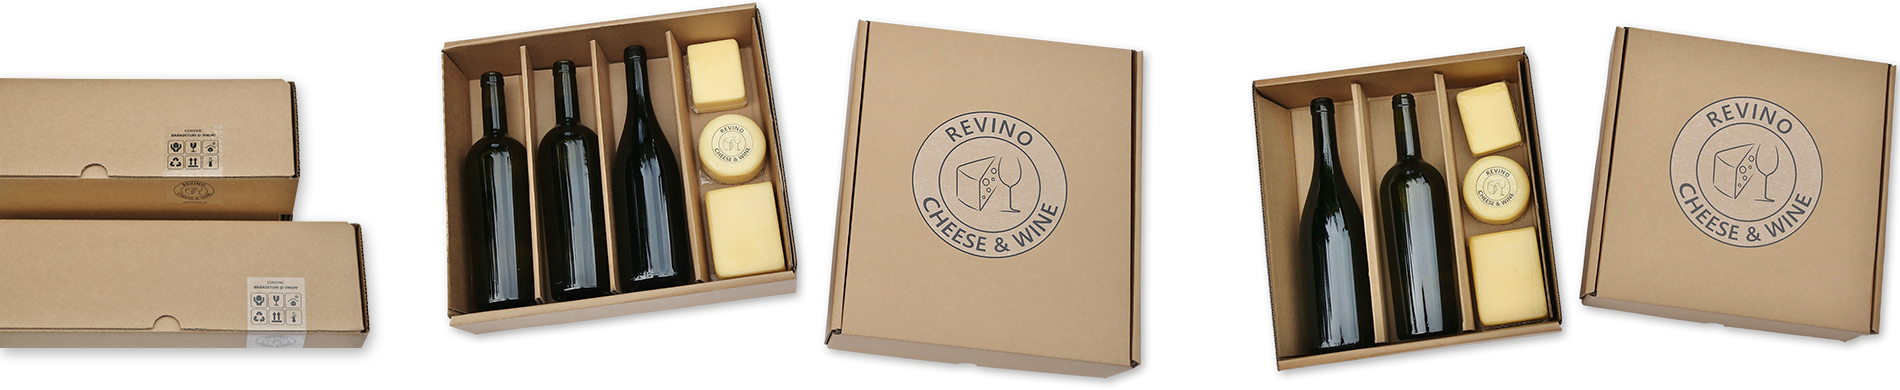 CHEESE BOX DETAILS REVINO